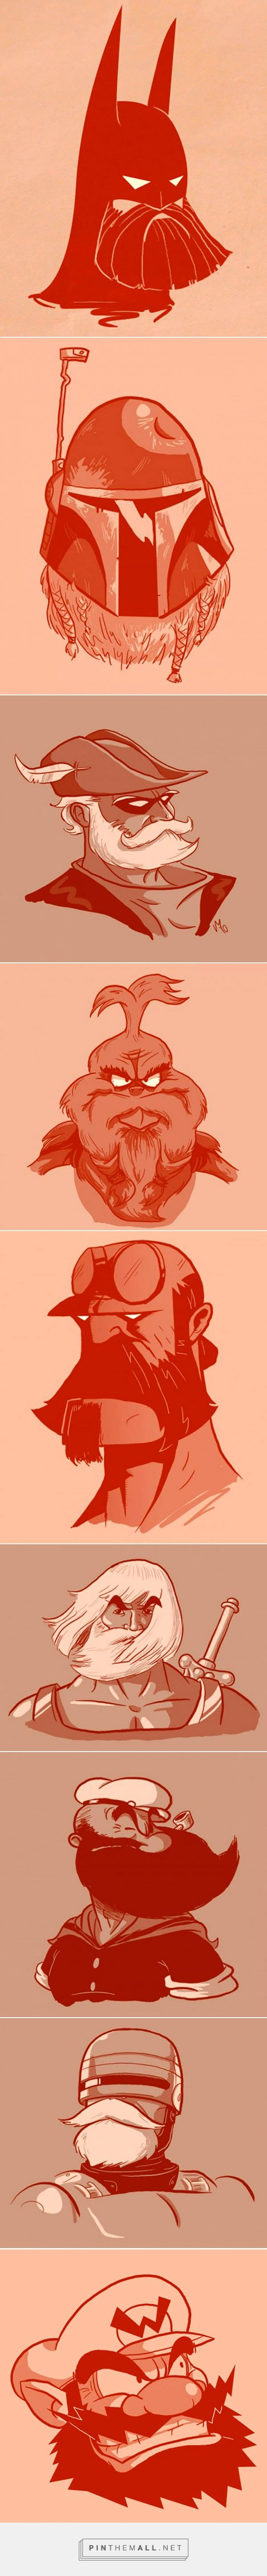 Bearded superheroes by Vanja Mrgan